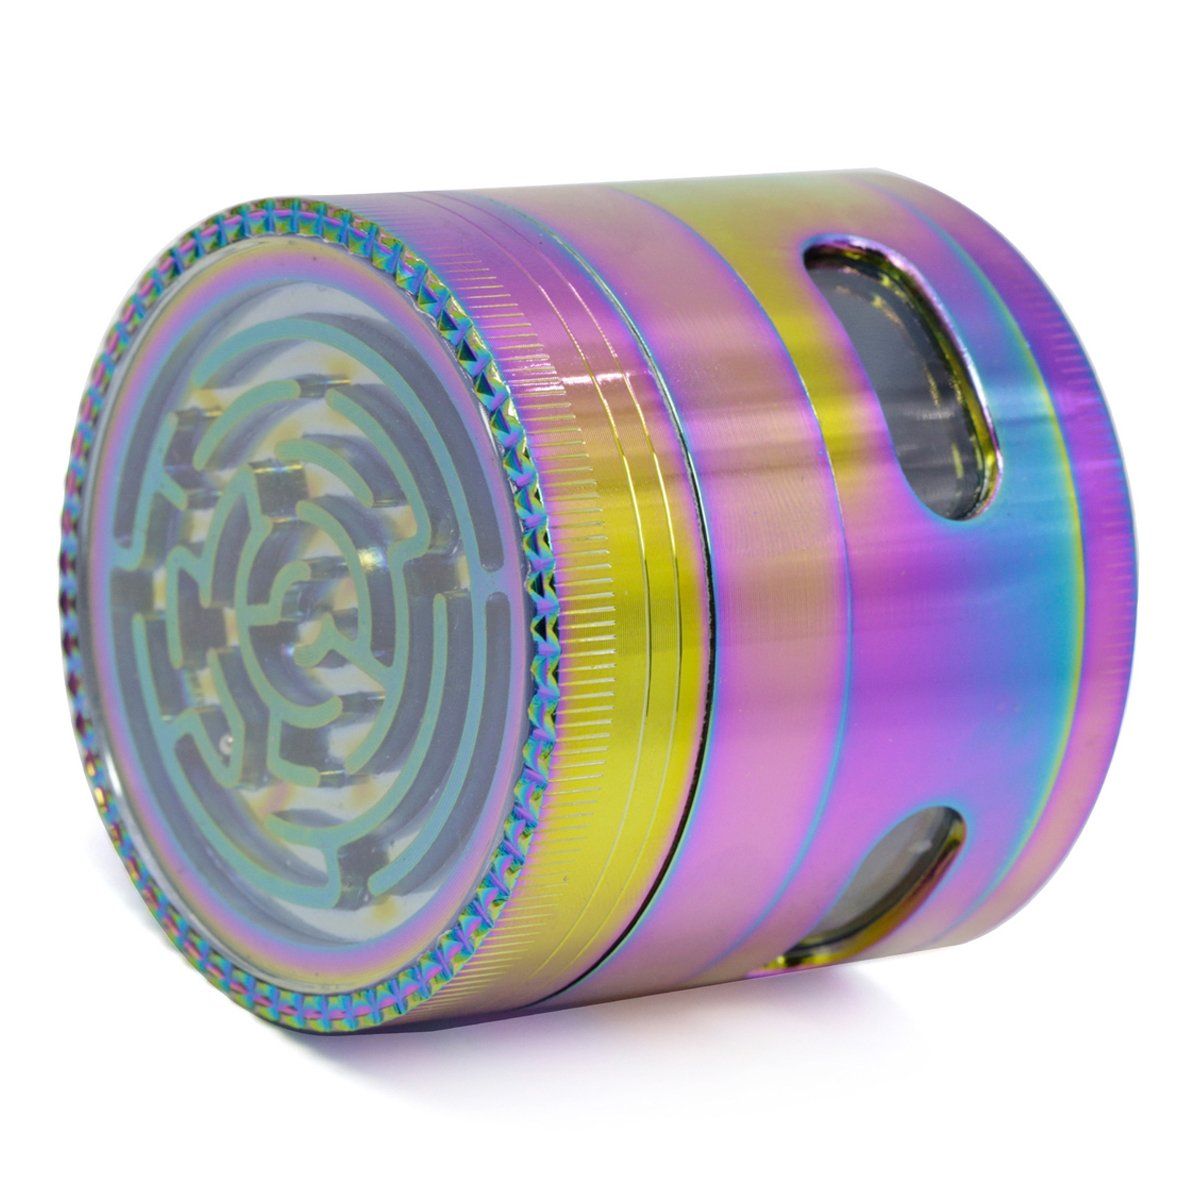 UTOPP 2.5'' Large Herb Grinder Colourful Ice Blue 4 Pieces Unique Grinder with Pollen Catcher for weed tobacco spices with Viewable Window